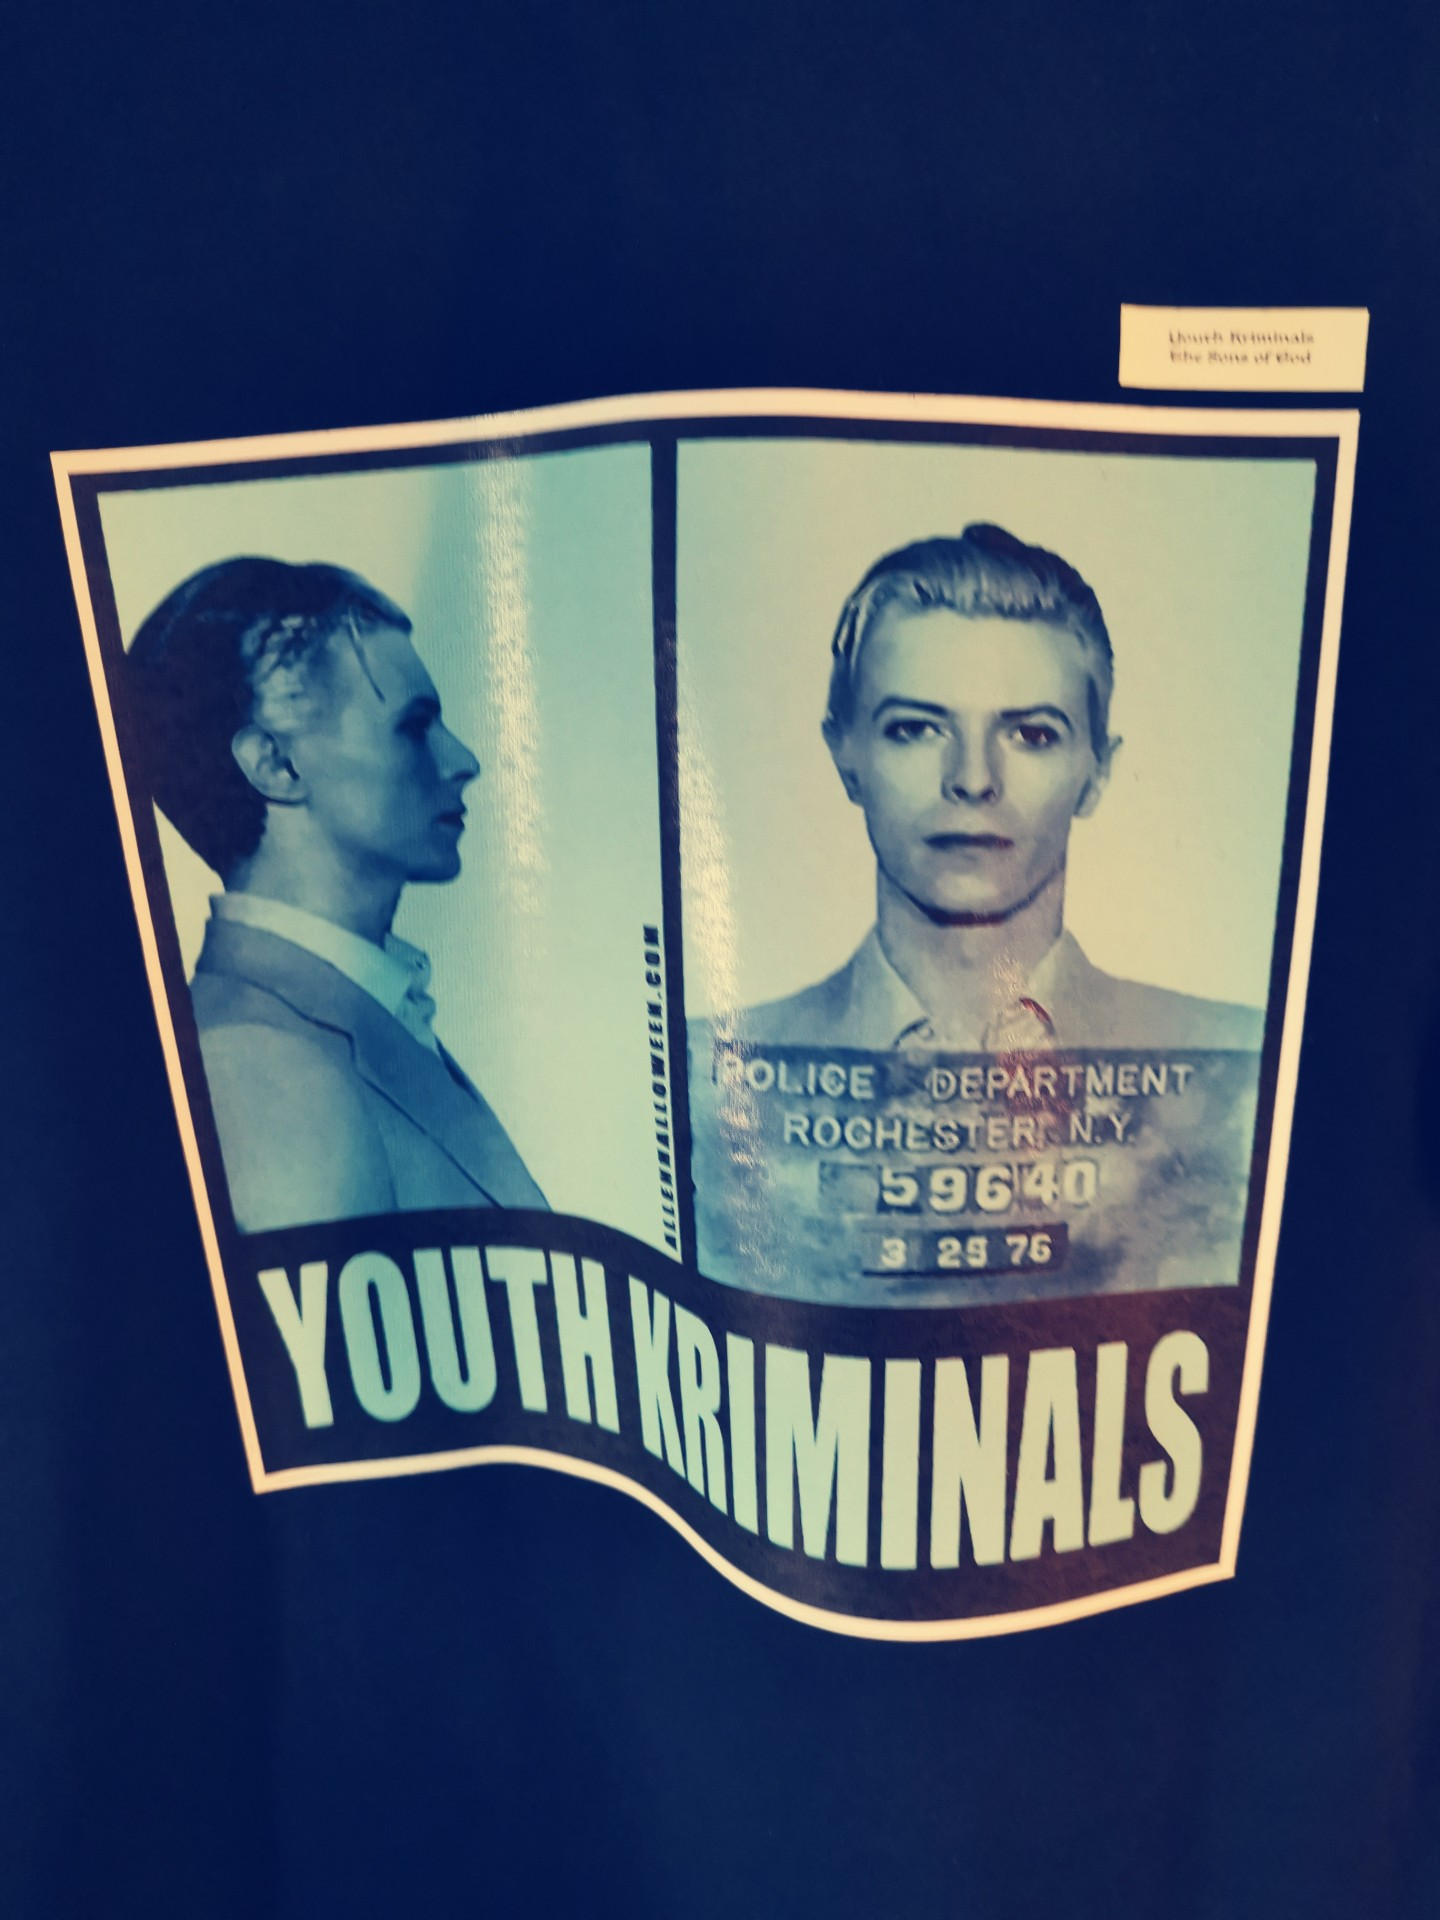 T-Shirt Youth Kriminals (David Bowie)